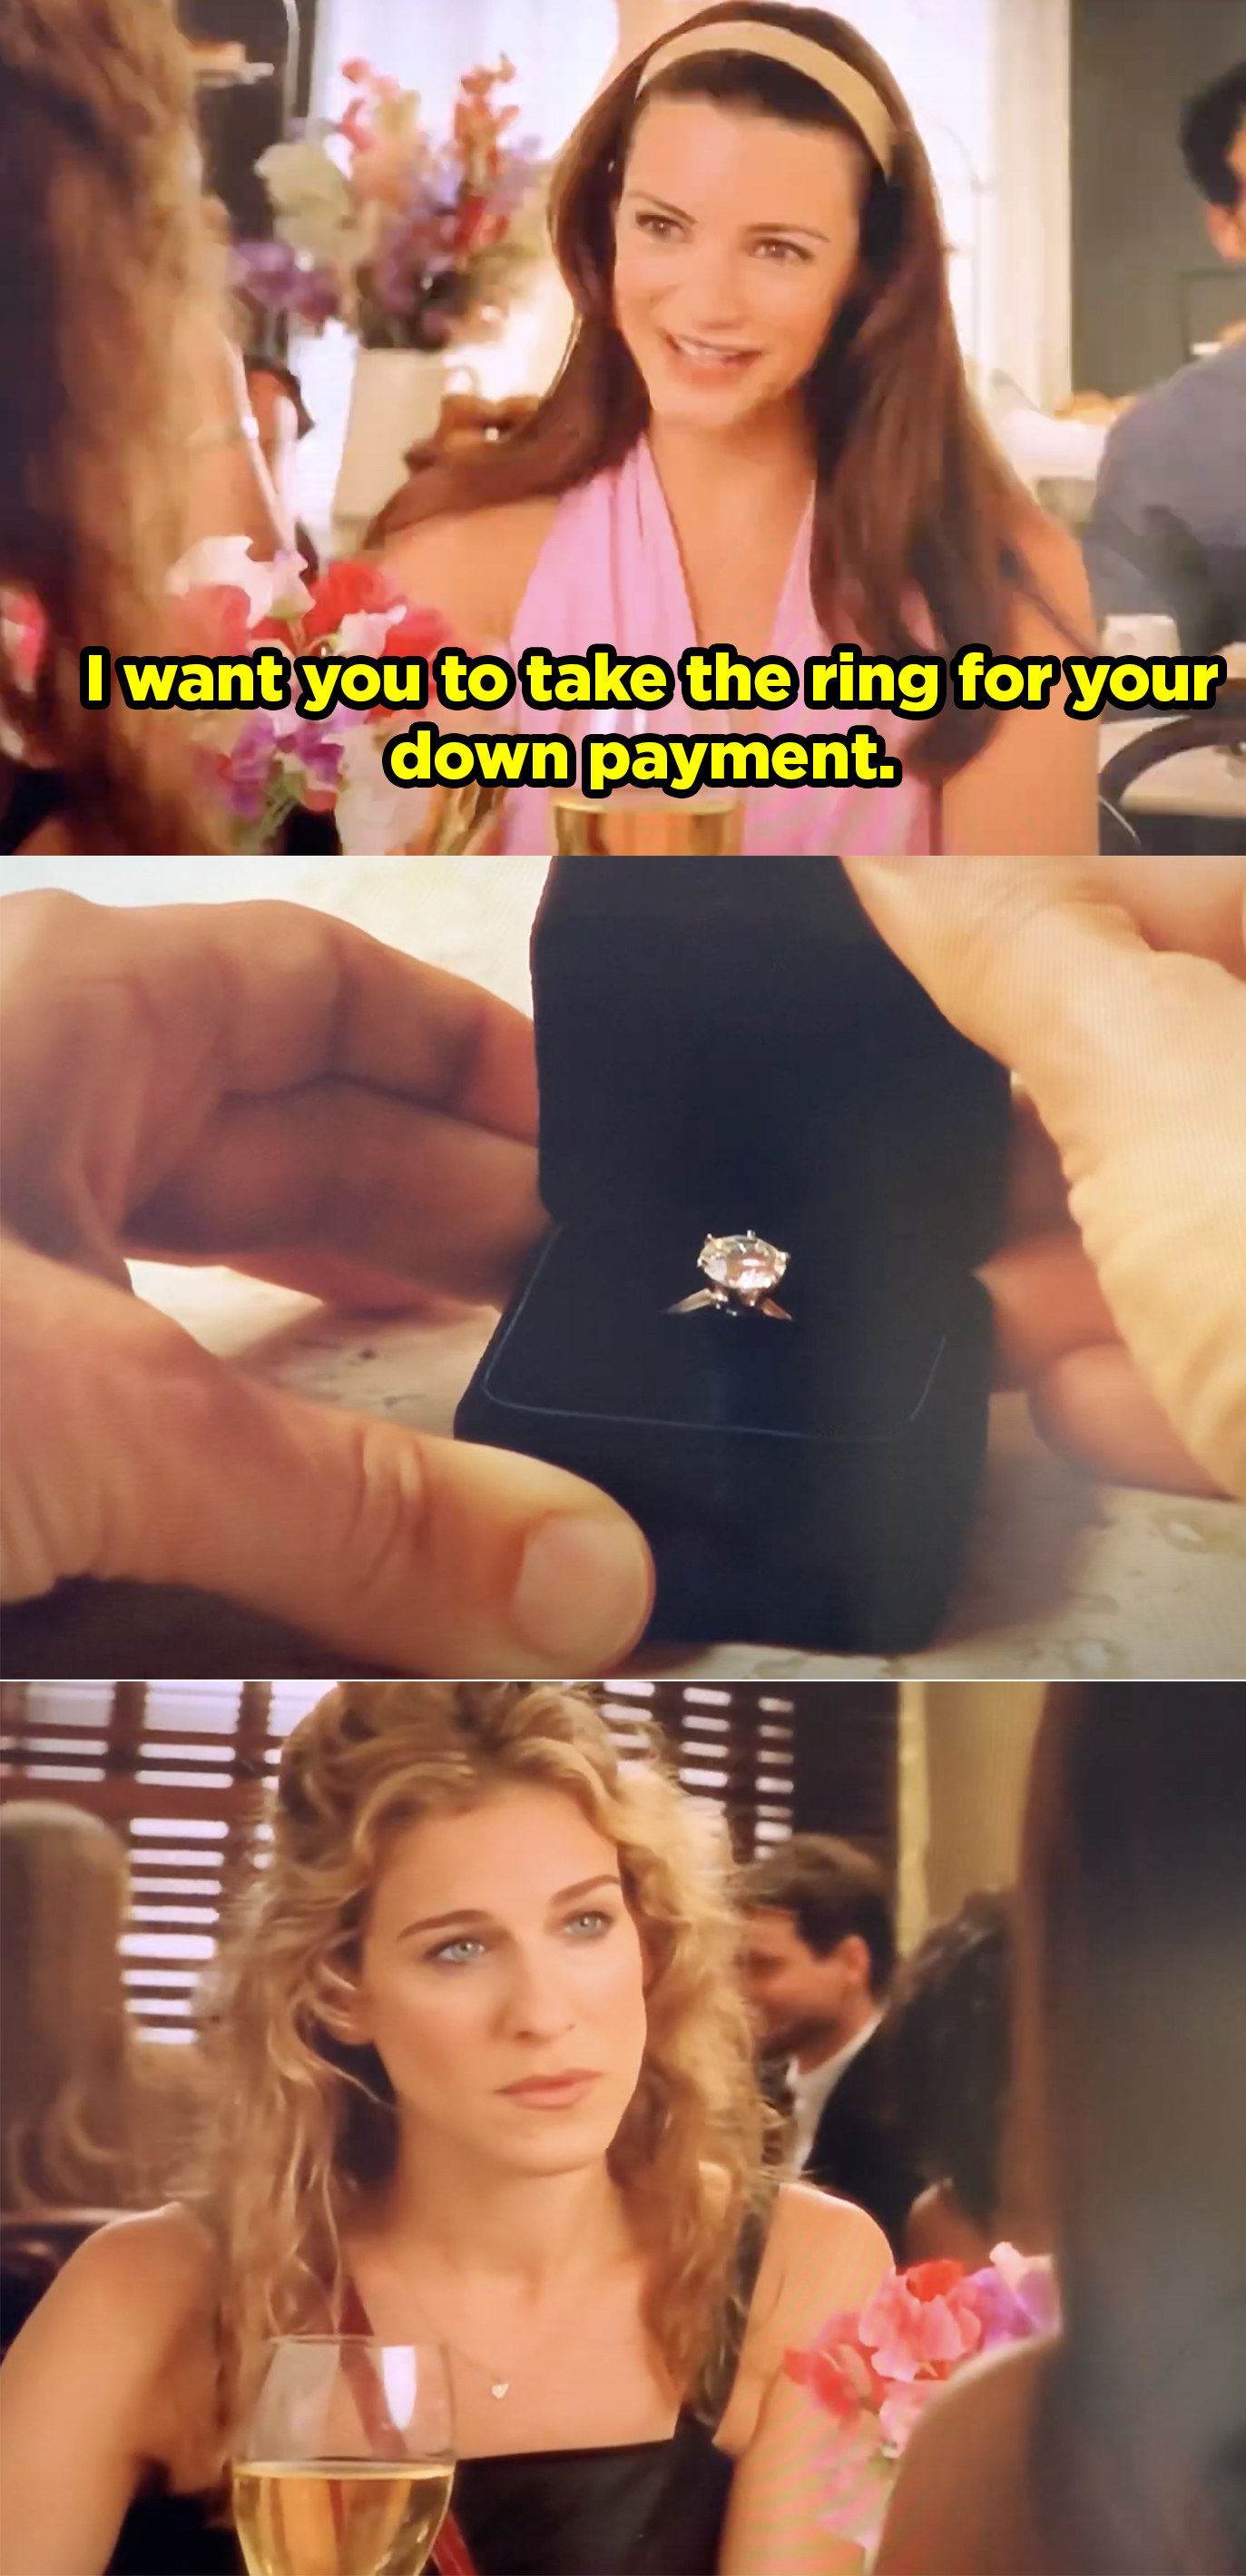 Charlotte handing Carrie her old engagement ring.